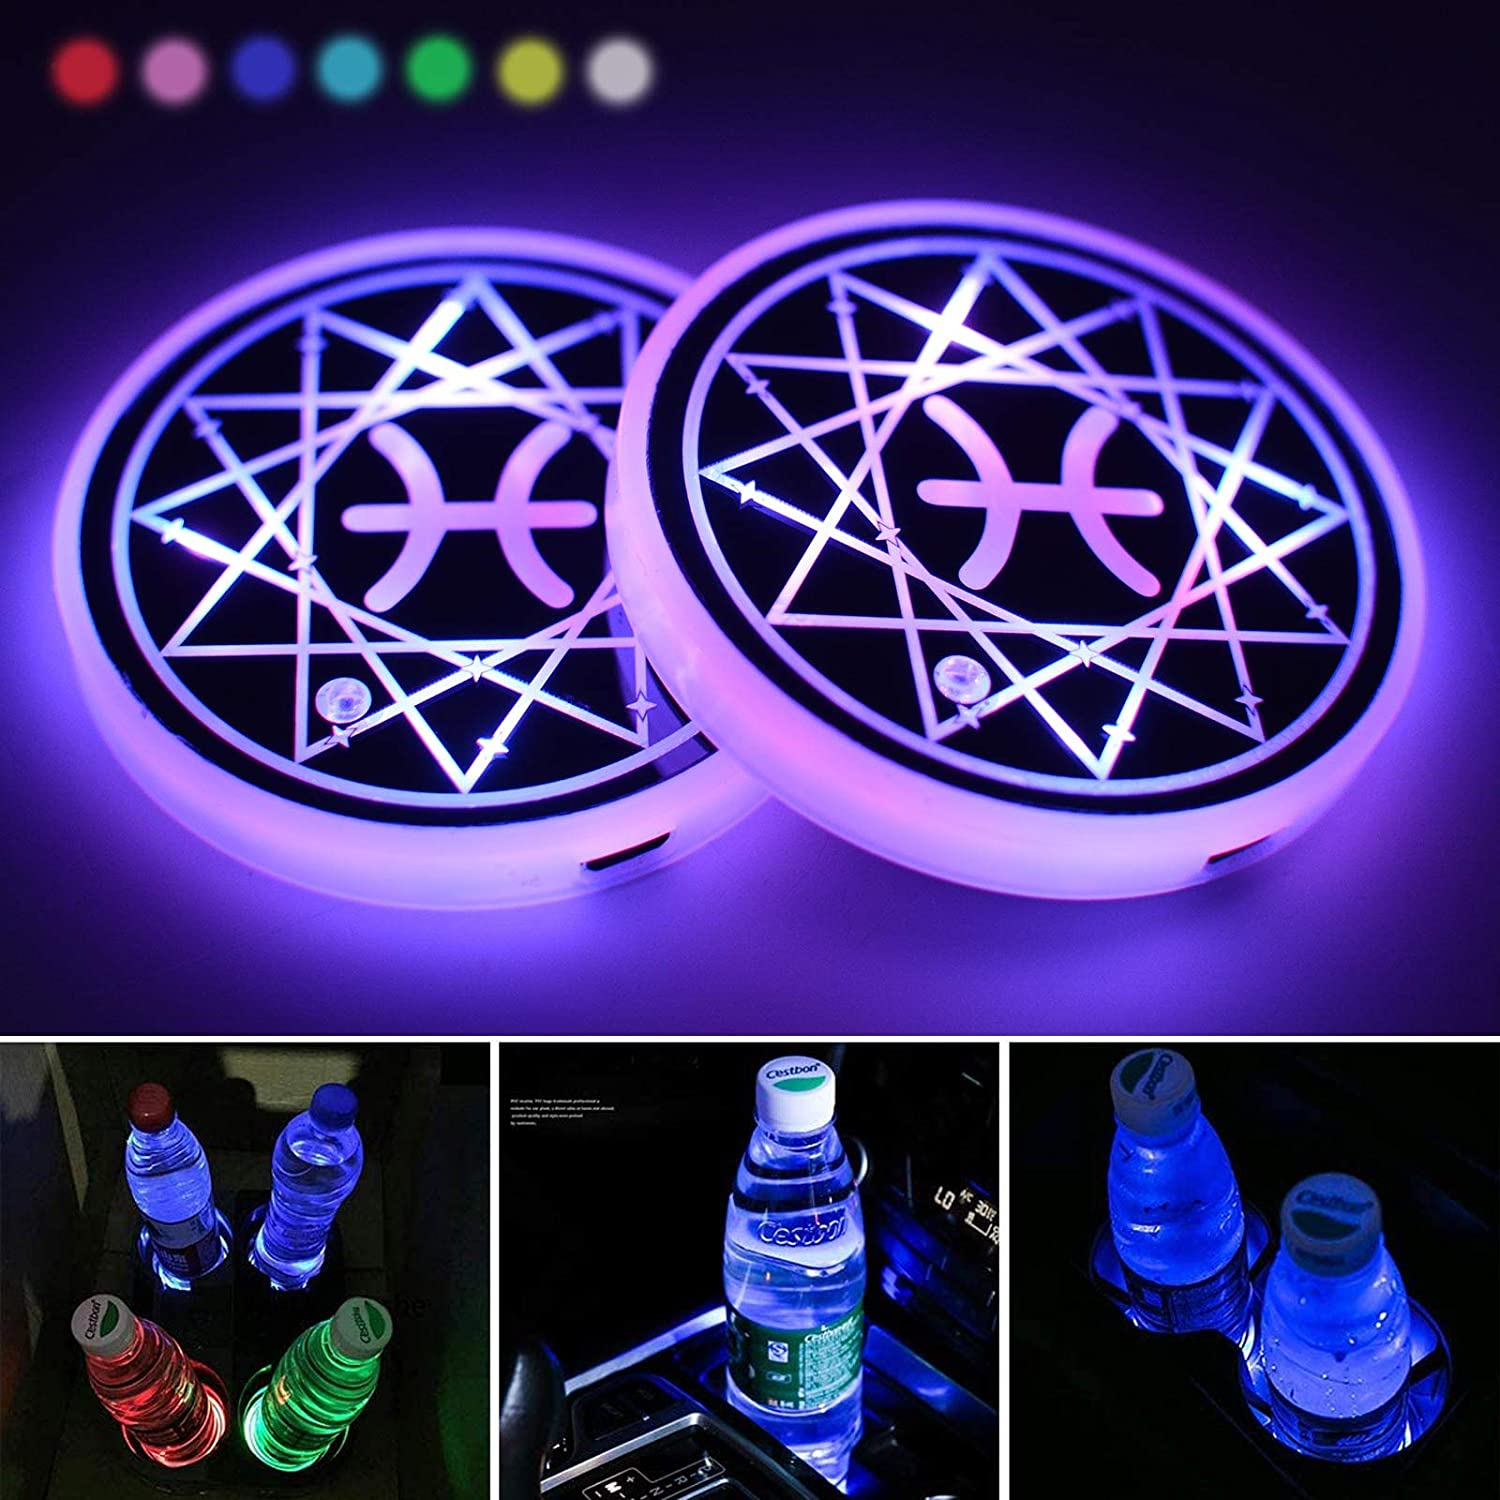 LED Cup Holder Lights,Pisces Car Cup Holder Coaster for Car with 7 Colors Changing USB Charging Mat, Luminescent Constellation Cup Pad Interior Atmosphere Lamp Decoration Light (Pisces)